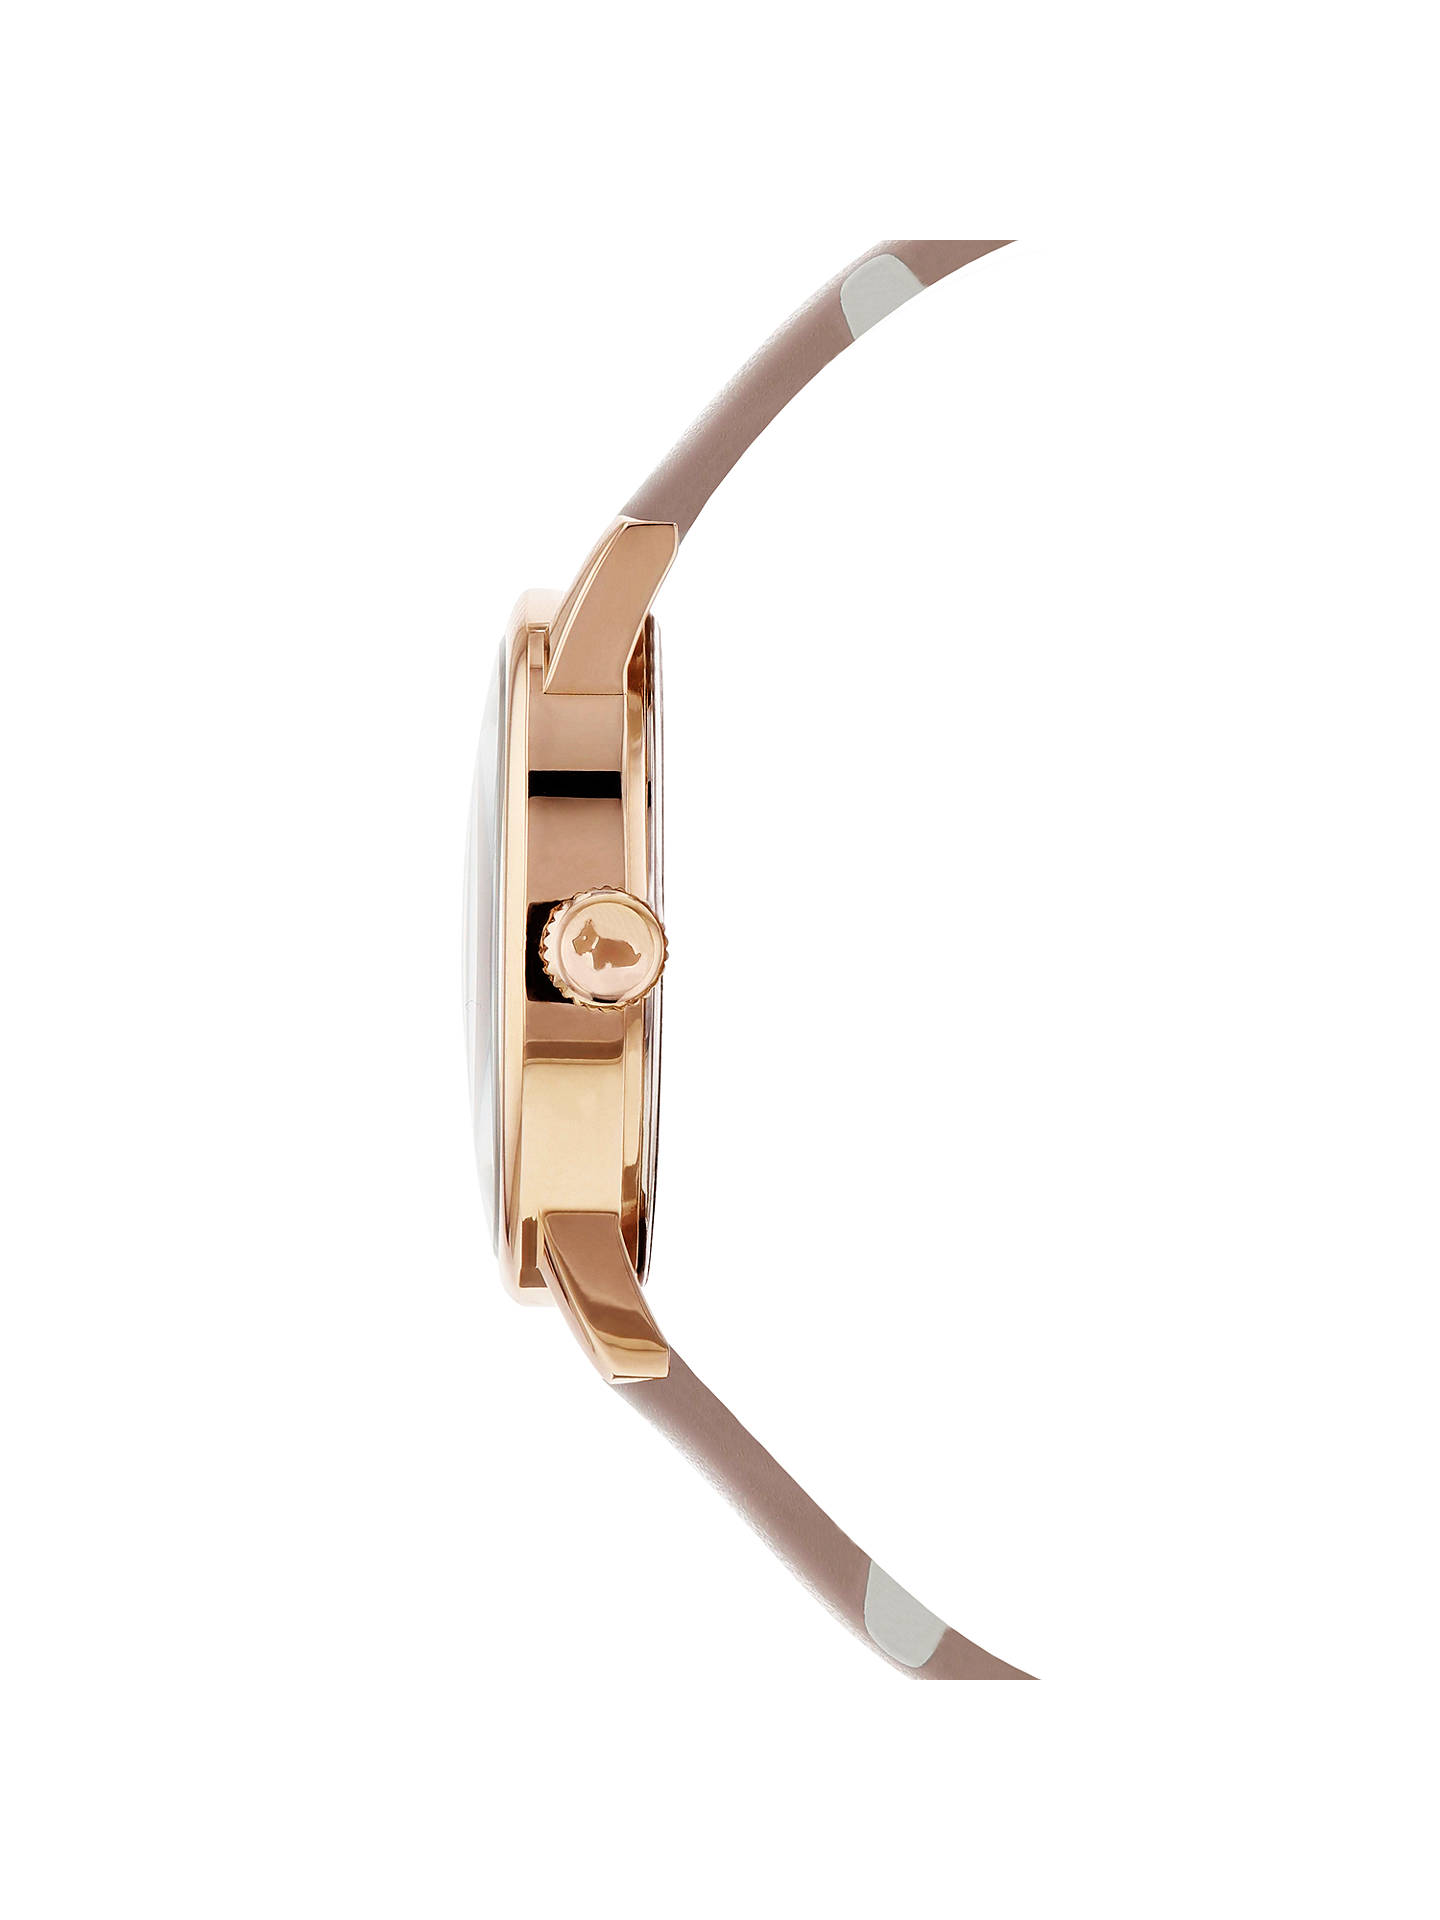 BuyRadley RY2568 Women's Vintage Dog Dot Leather Strap Watch, Blush Online at johnlewis.com